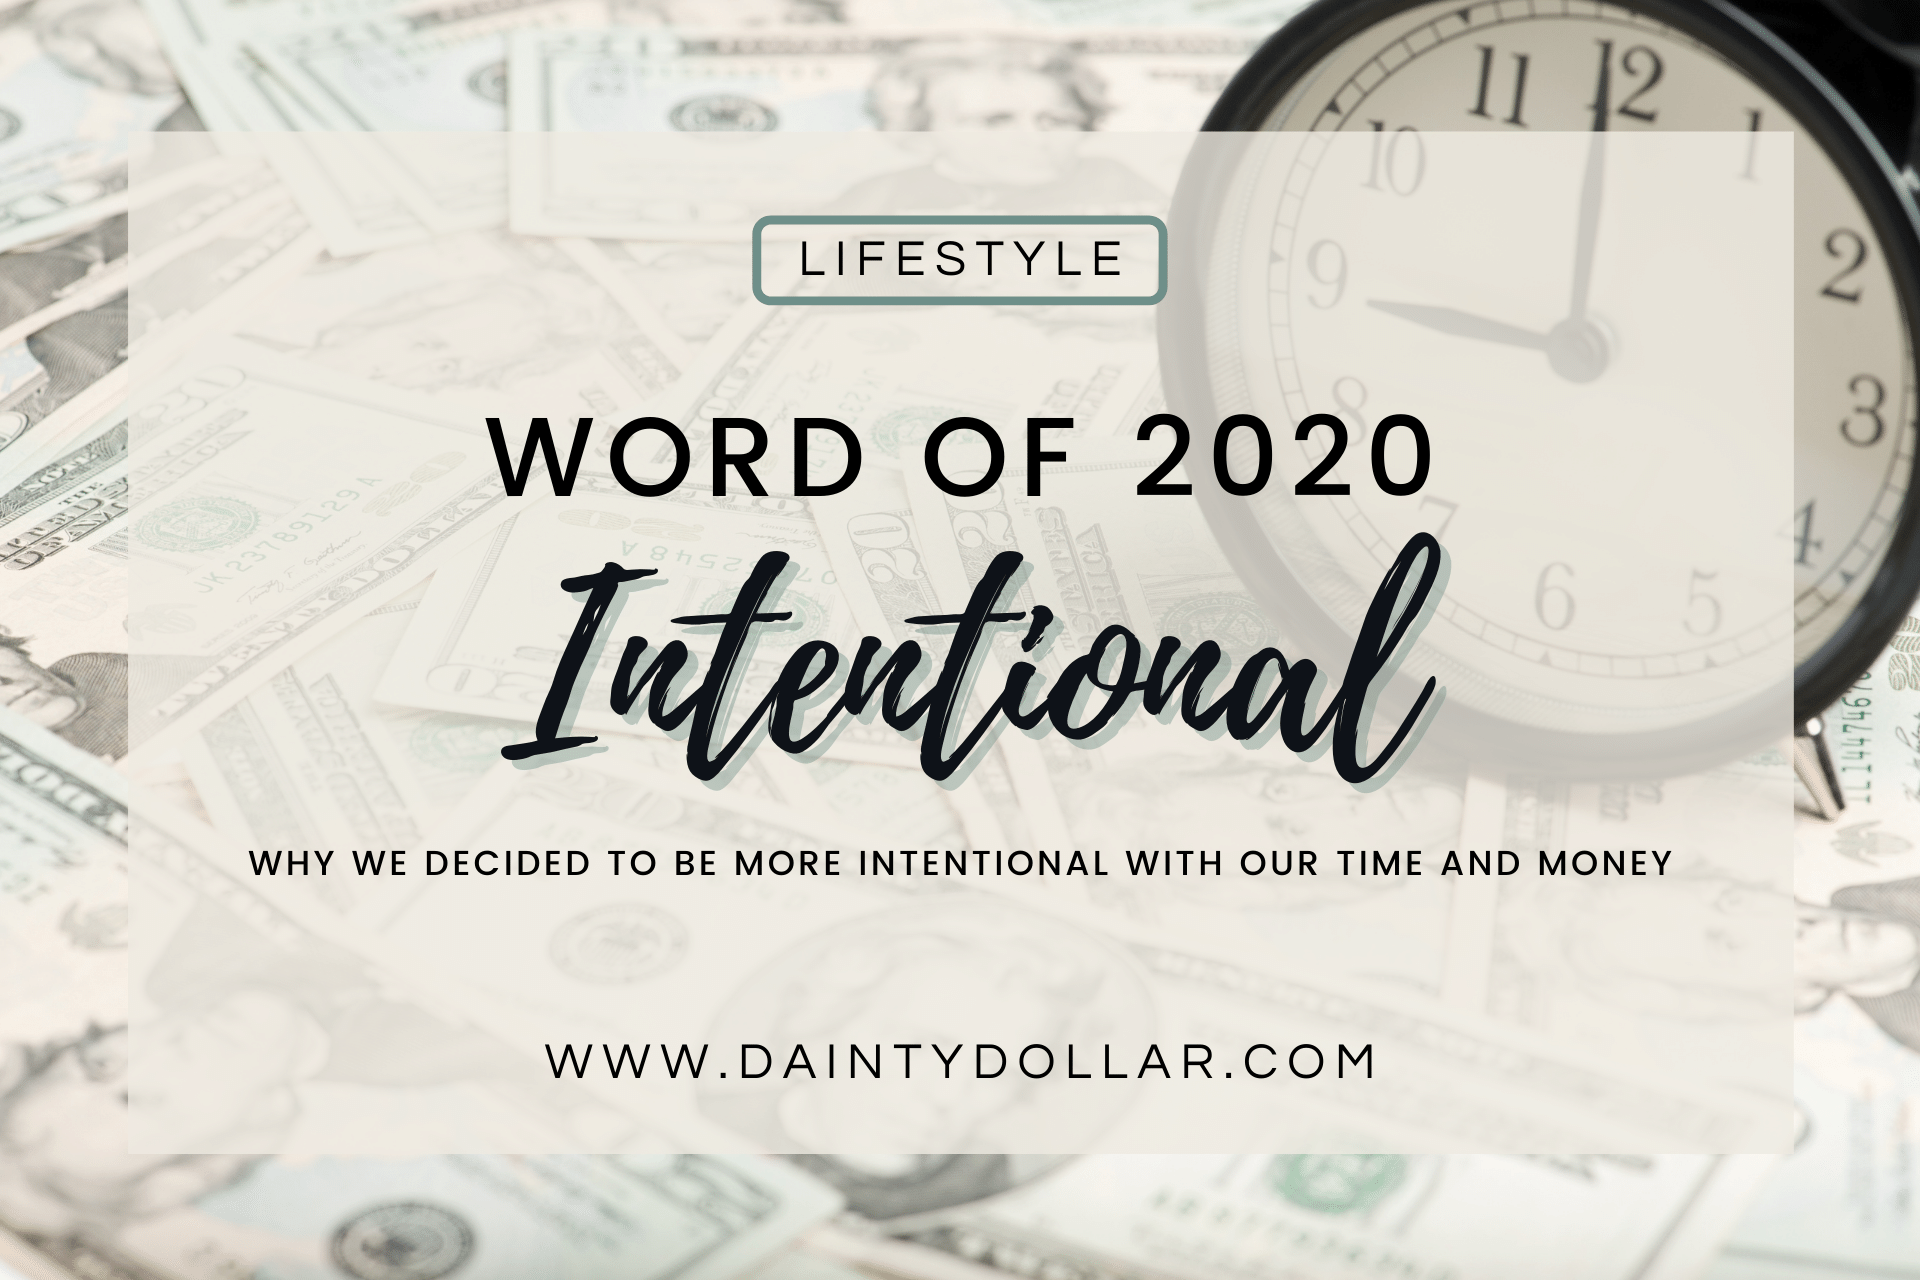 Word of 2020 Intentional - Lifestyle - Dainty Dollar